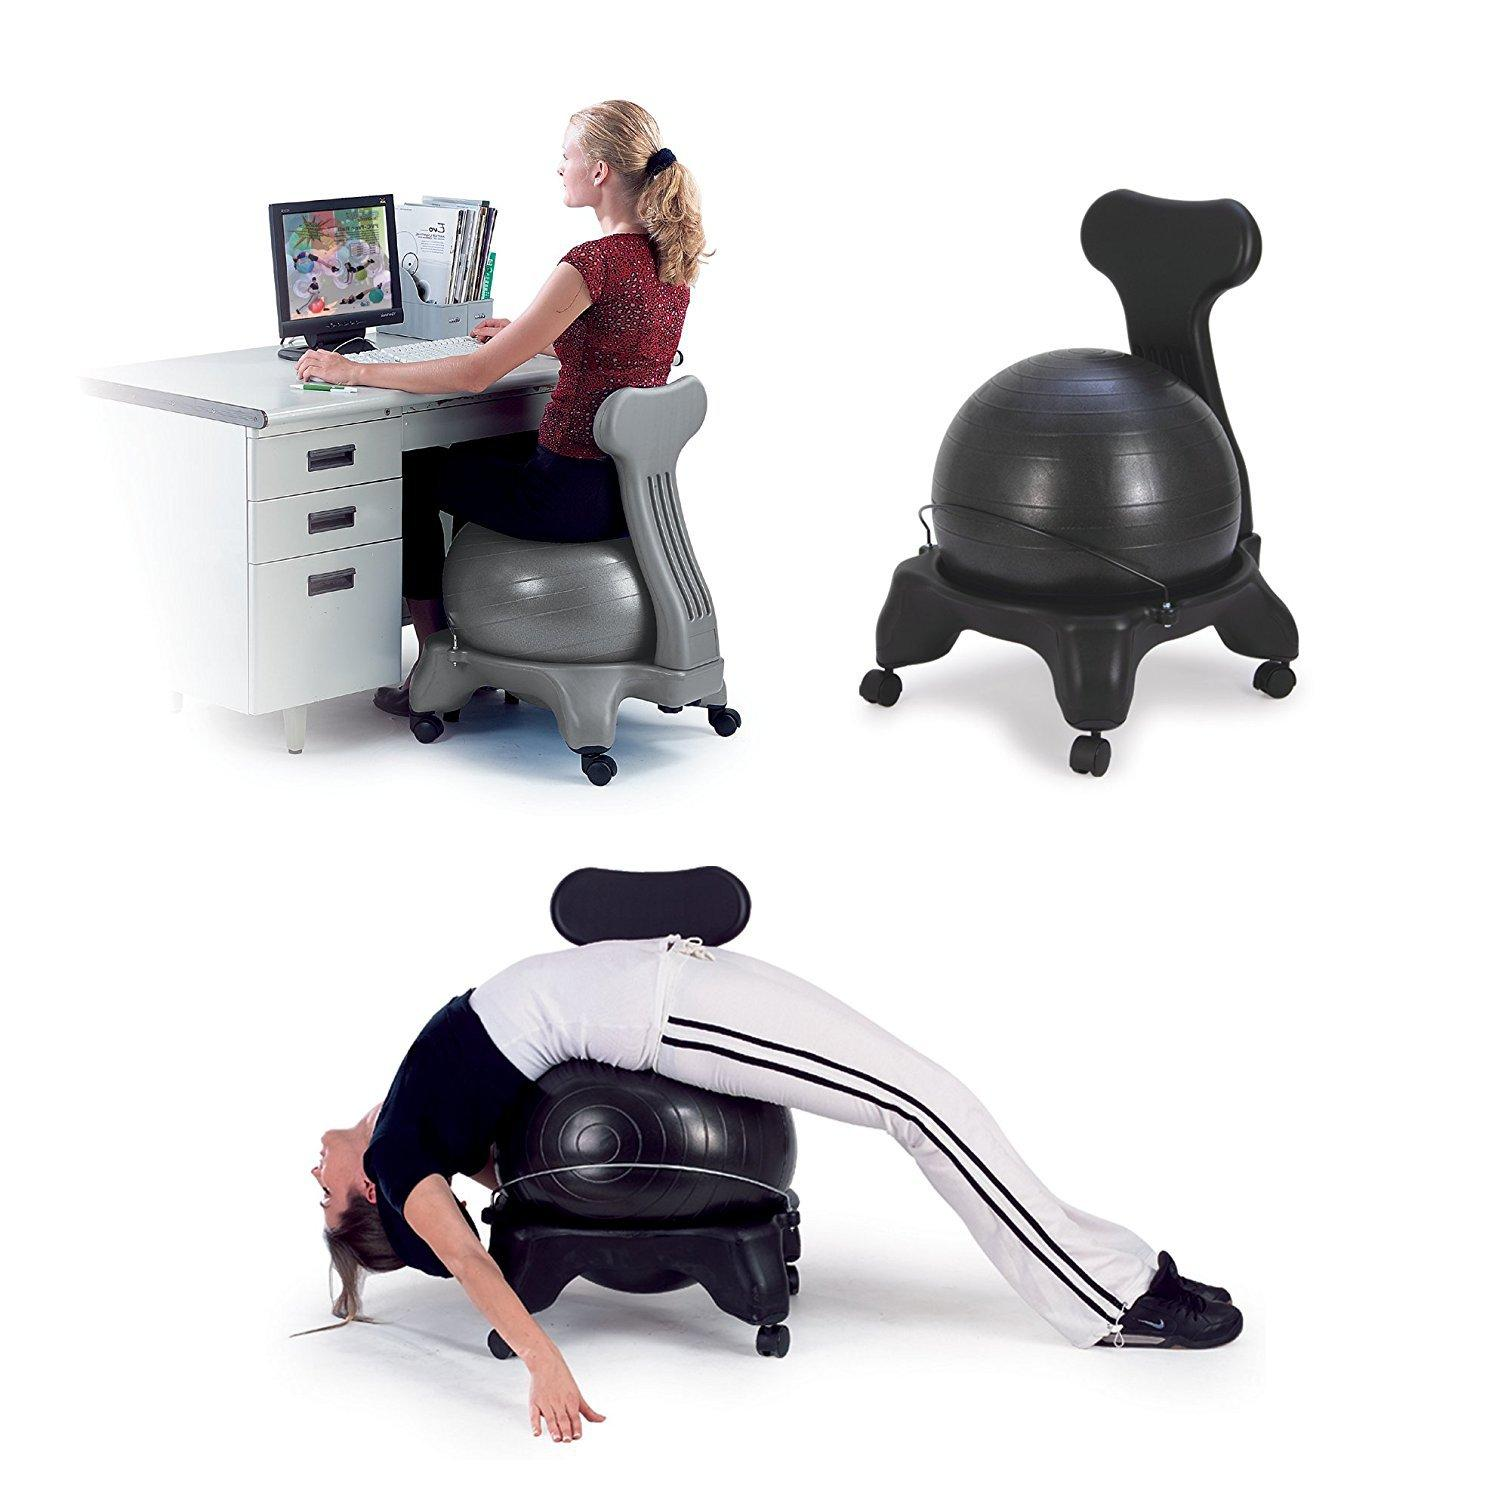 Yoga Ball Chair Office Chair Recovery Treatment Chair Stretch Seat Body-Adjustment Seat Fitness Stool Chair Free Shipping